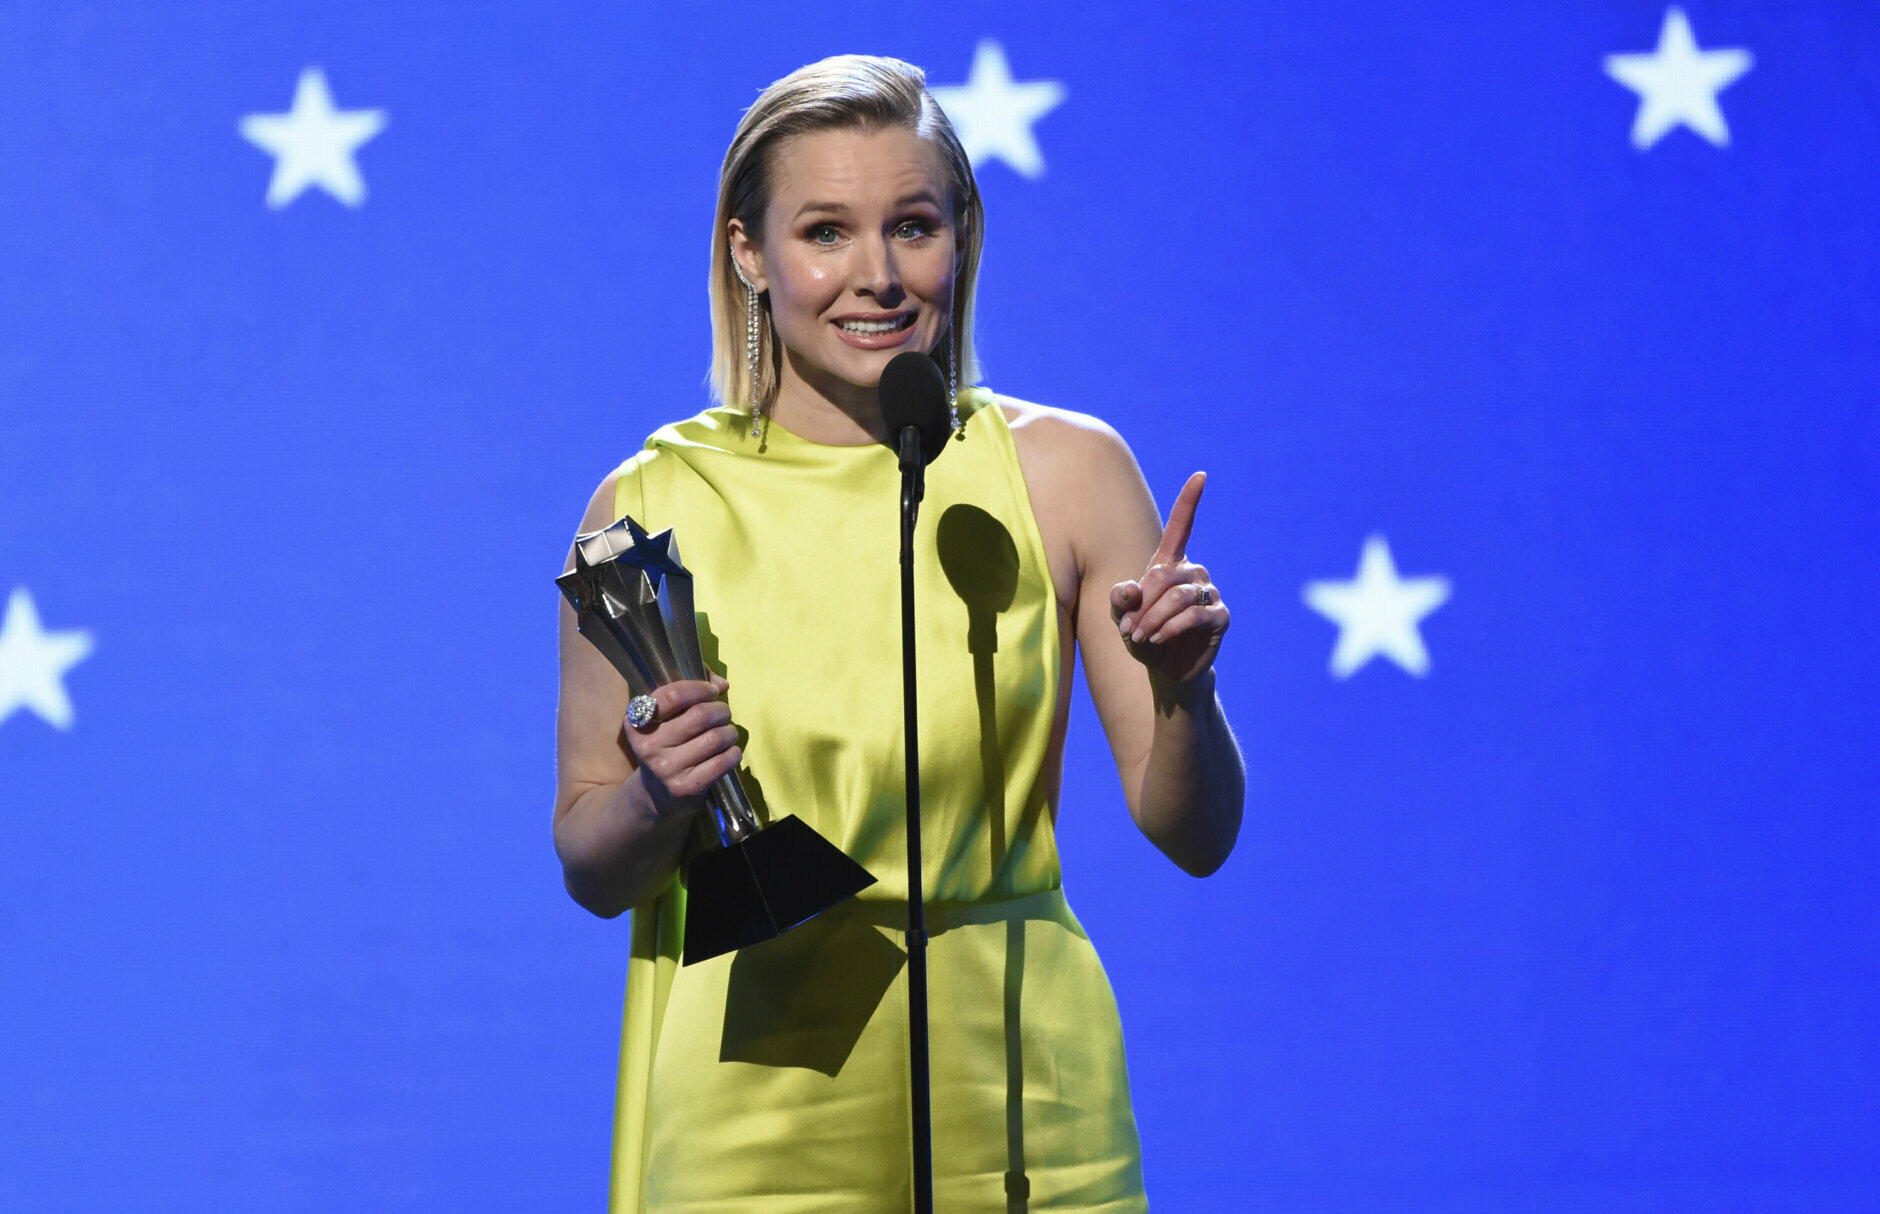 Kristen Bell accepts the #SeeHer award at the 25th annual Critics' Choice Awards on Sunday, Jan. 12, 2020, at the Barker Hangar in Santa Monica, Calif. (AP Photo/Chris Pizzello)